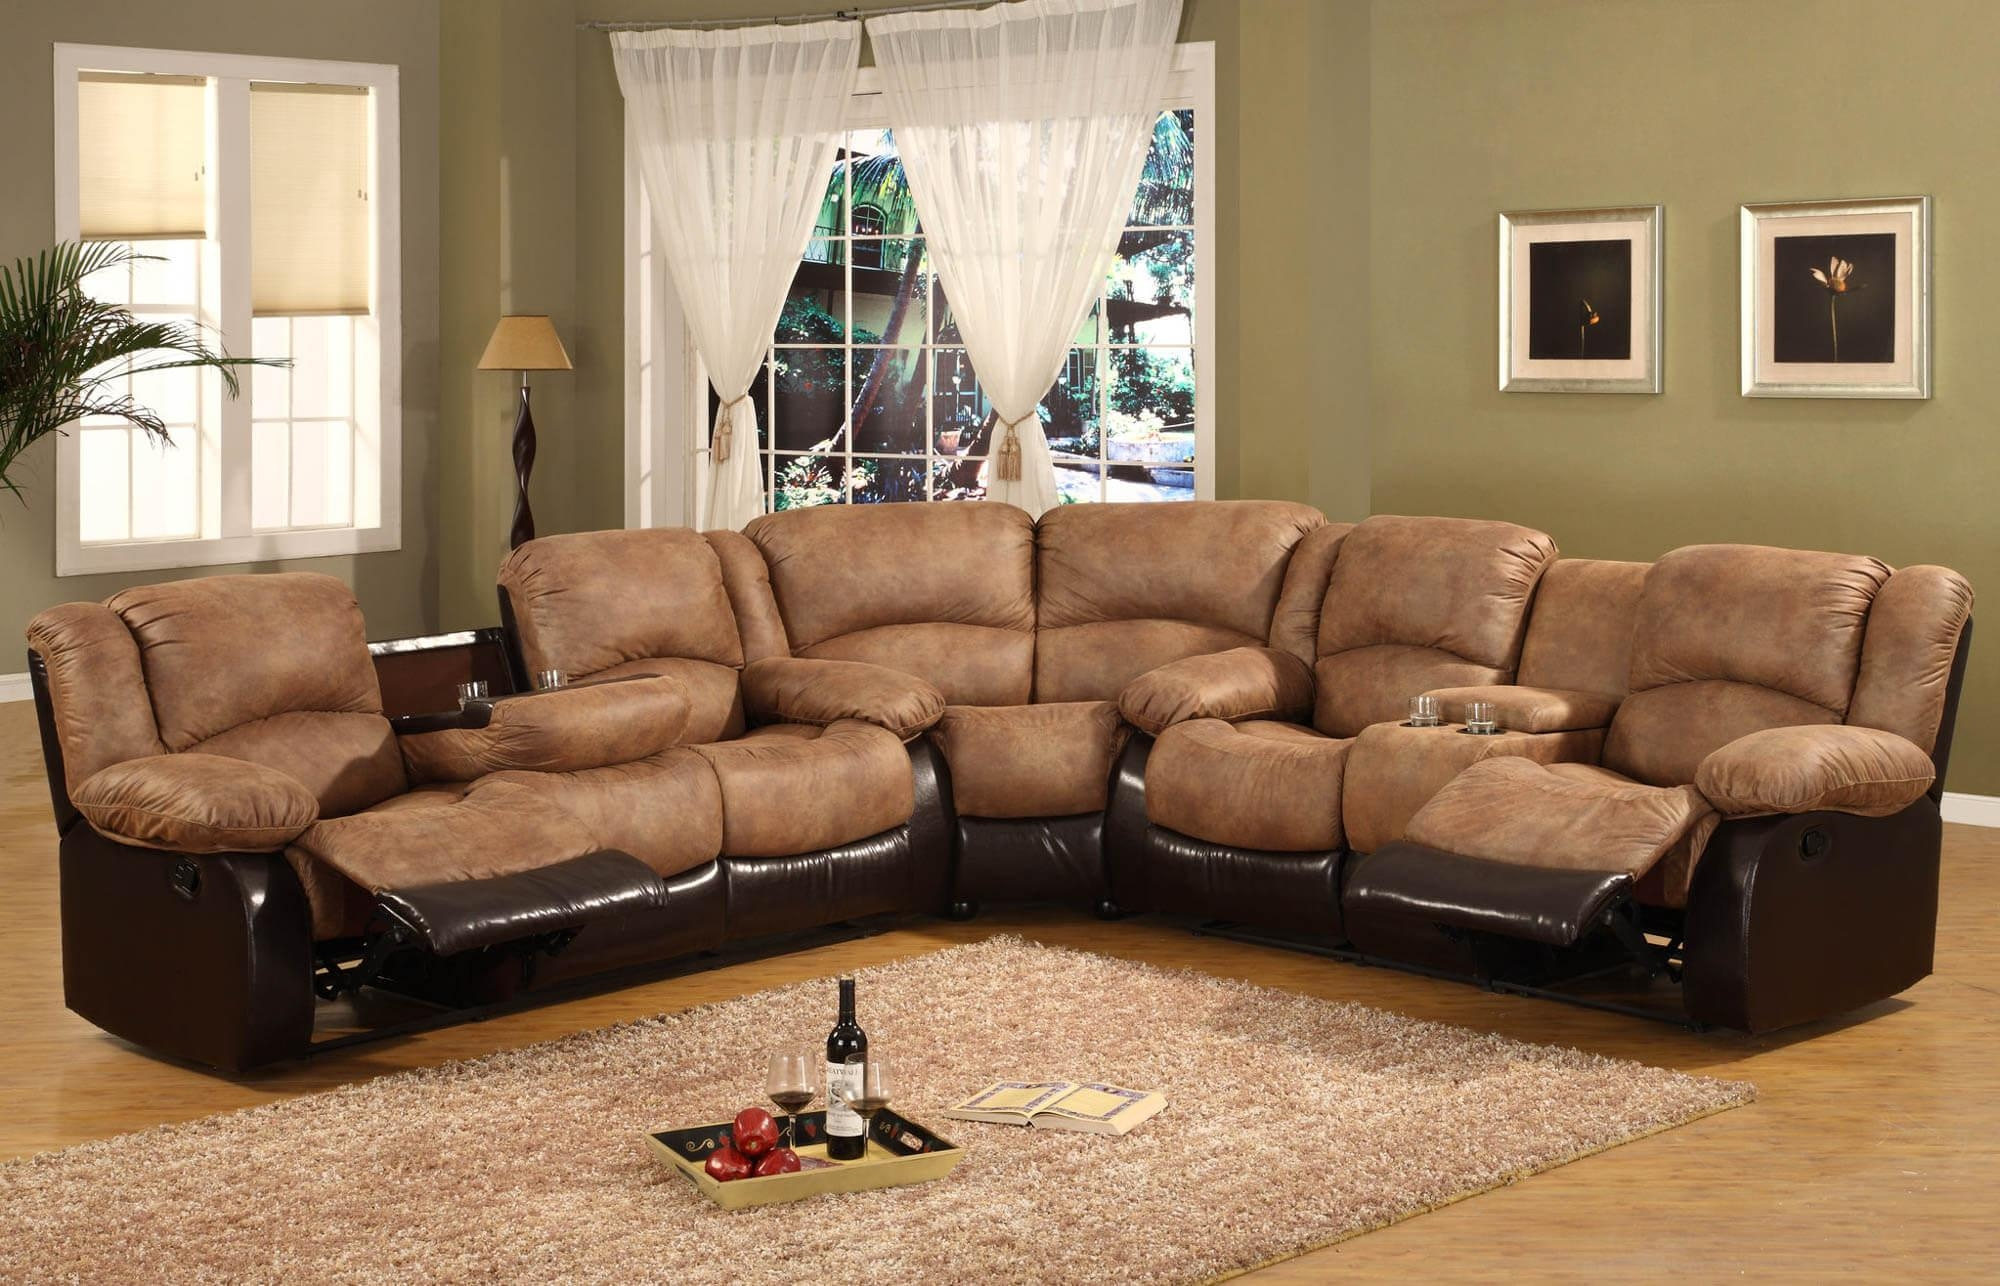 Sectional Sofa Craigslist | Sofa Gallery | Kengire Inside Craigslist Leather Sofa (Image 14 of 20)